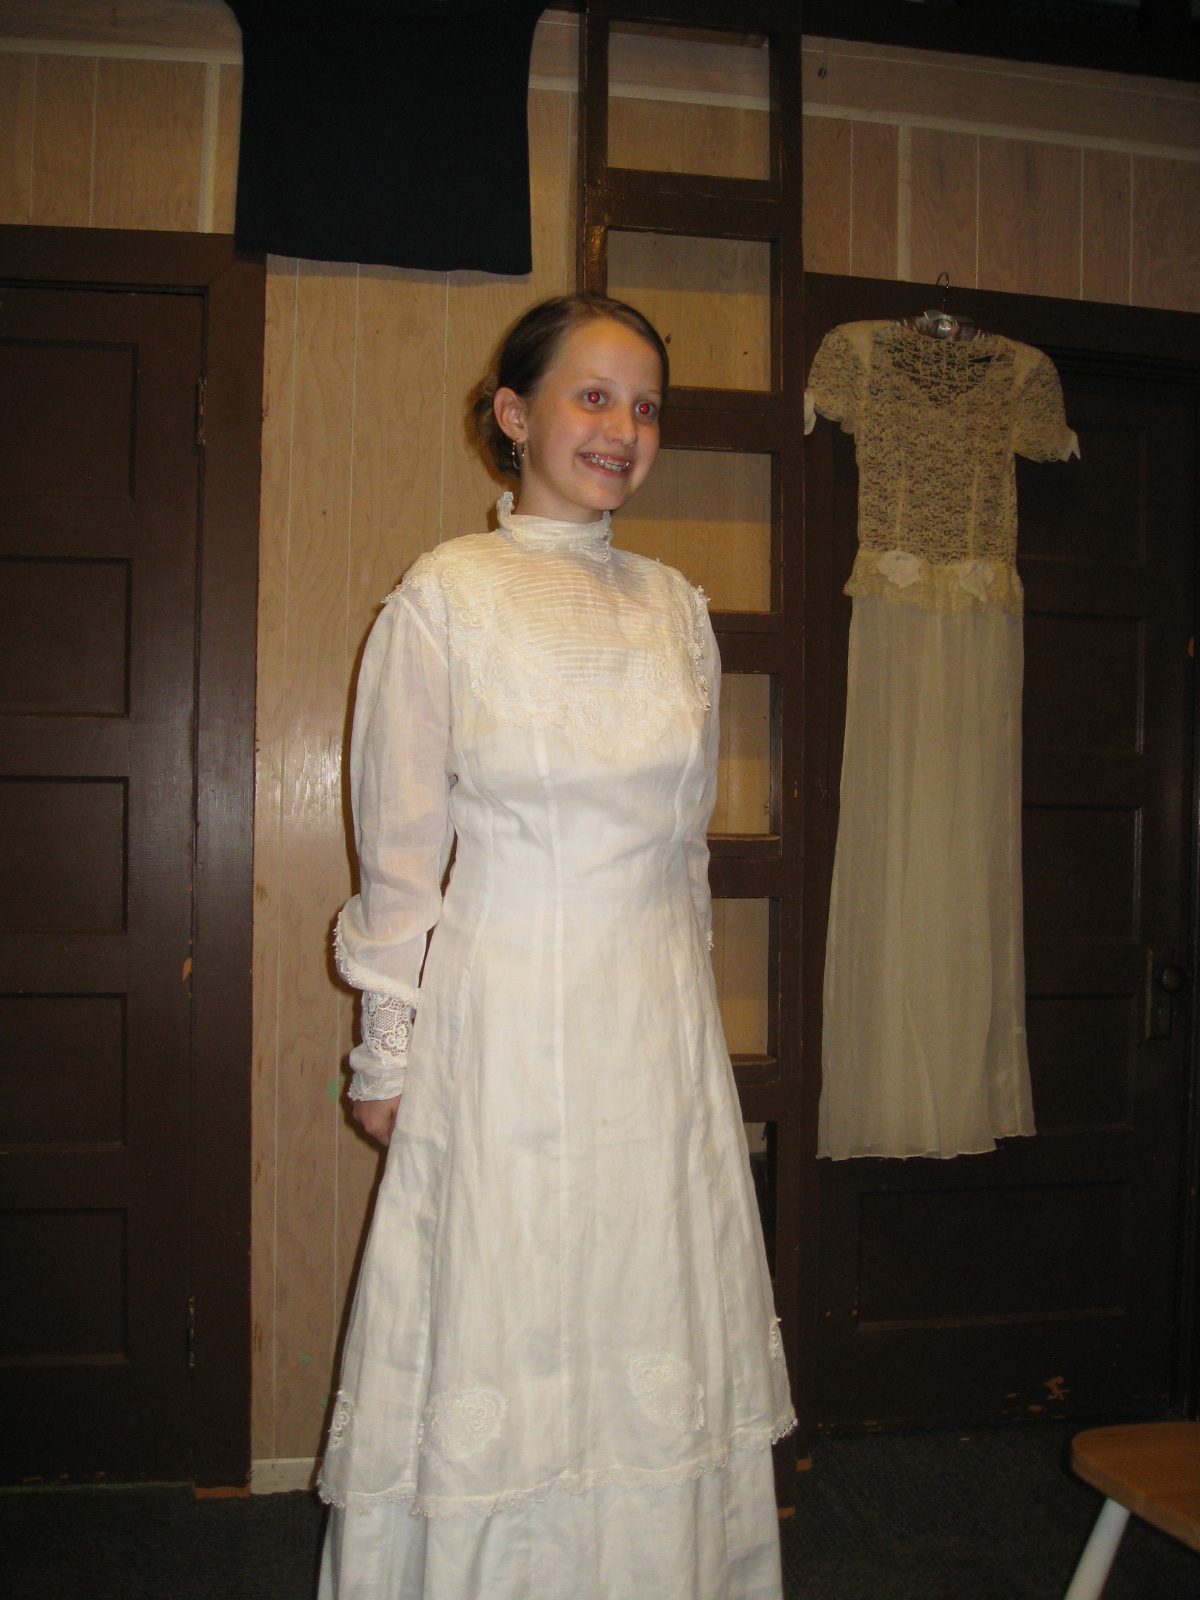 Where to sell used wedding dresses buy wedding dress used overlay ideas sell used wedding dresses wedding with where to sell used wedding dresses ombrellifo Gallery